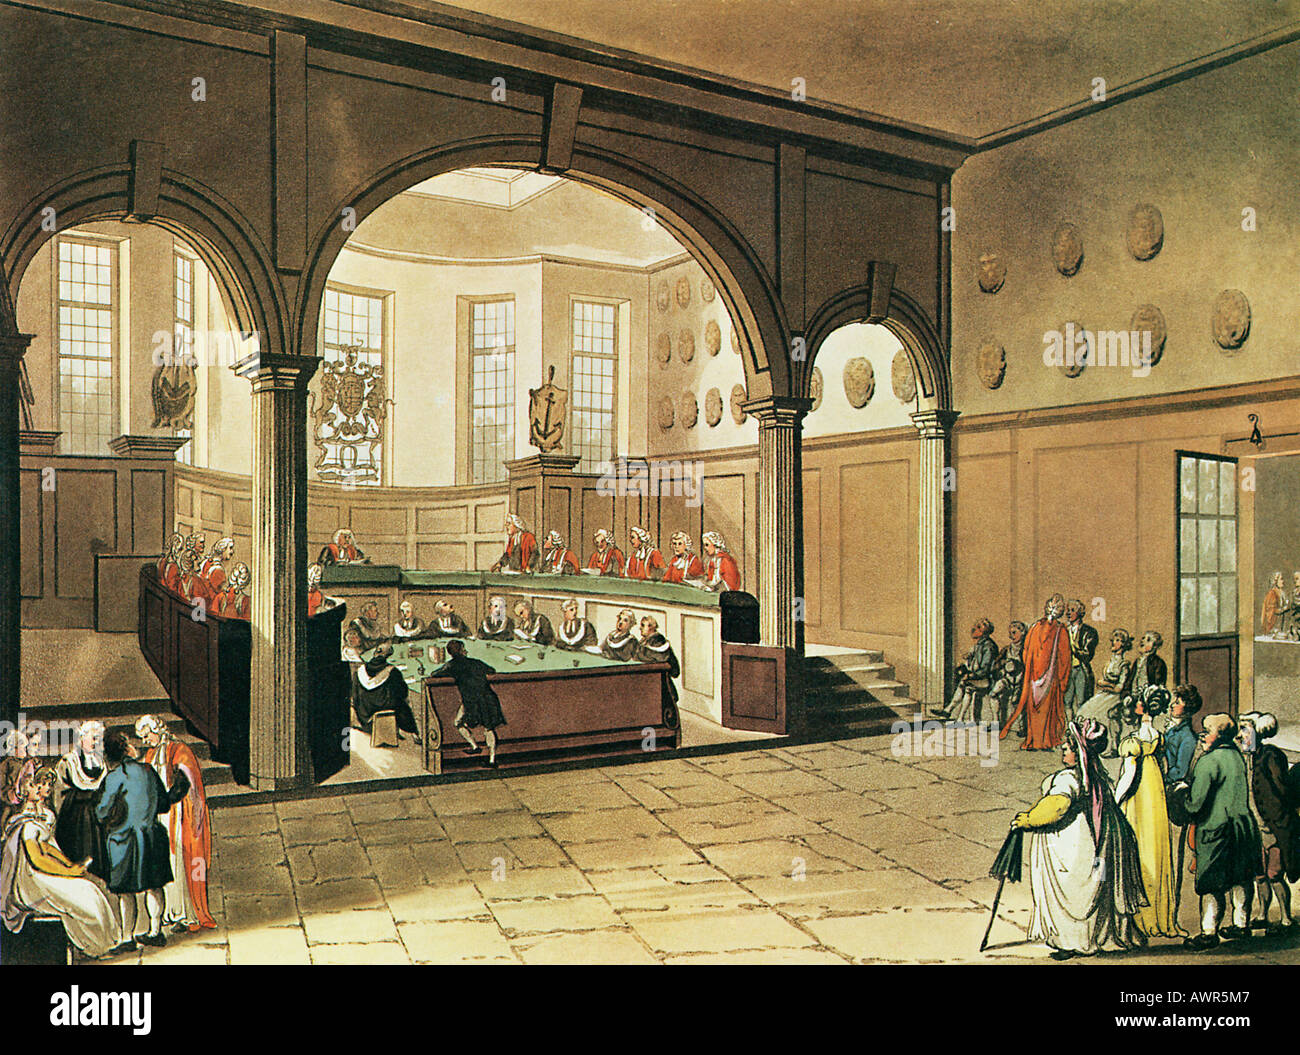 Doctors Commons 1805 from the Microcosm of London illustrated by Rowlandson Pugin - Stock Image